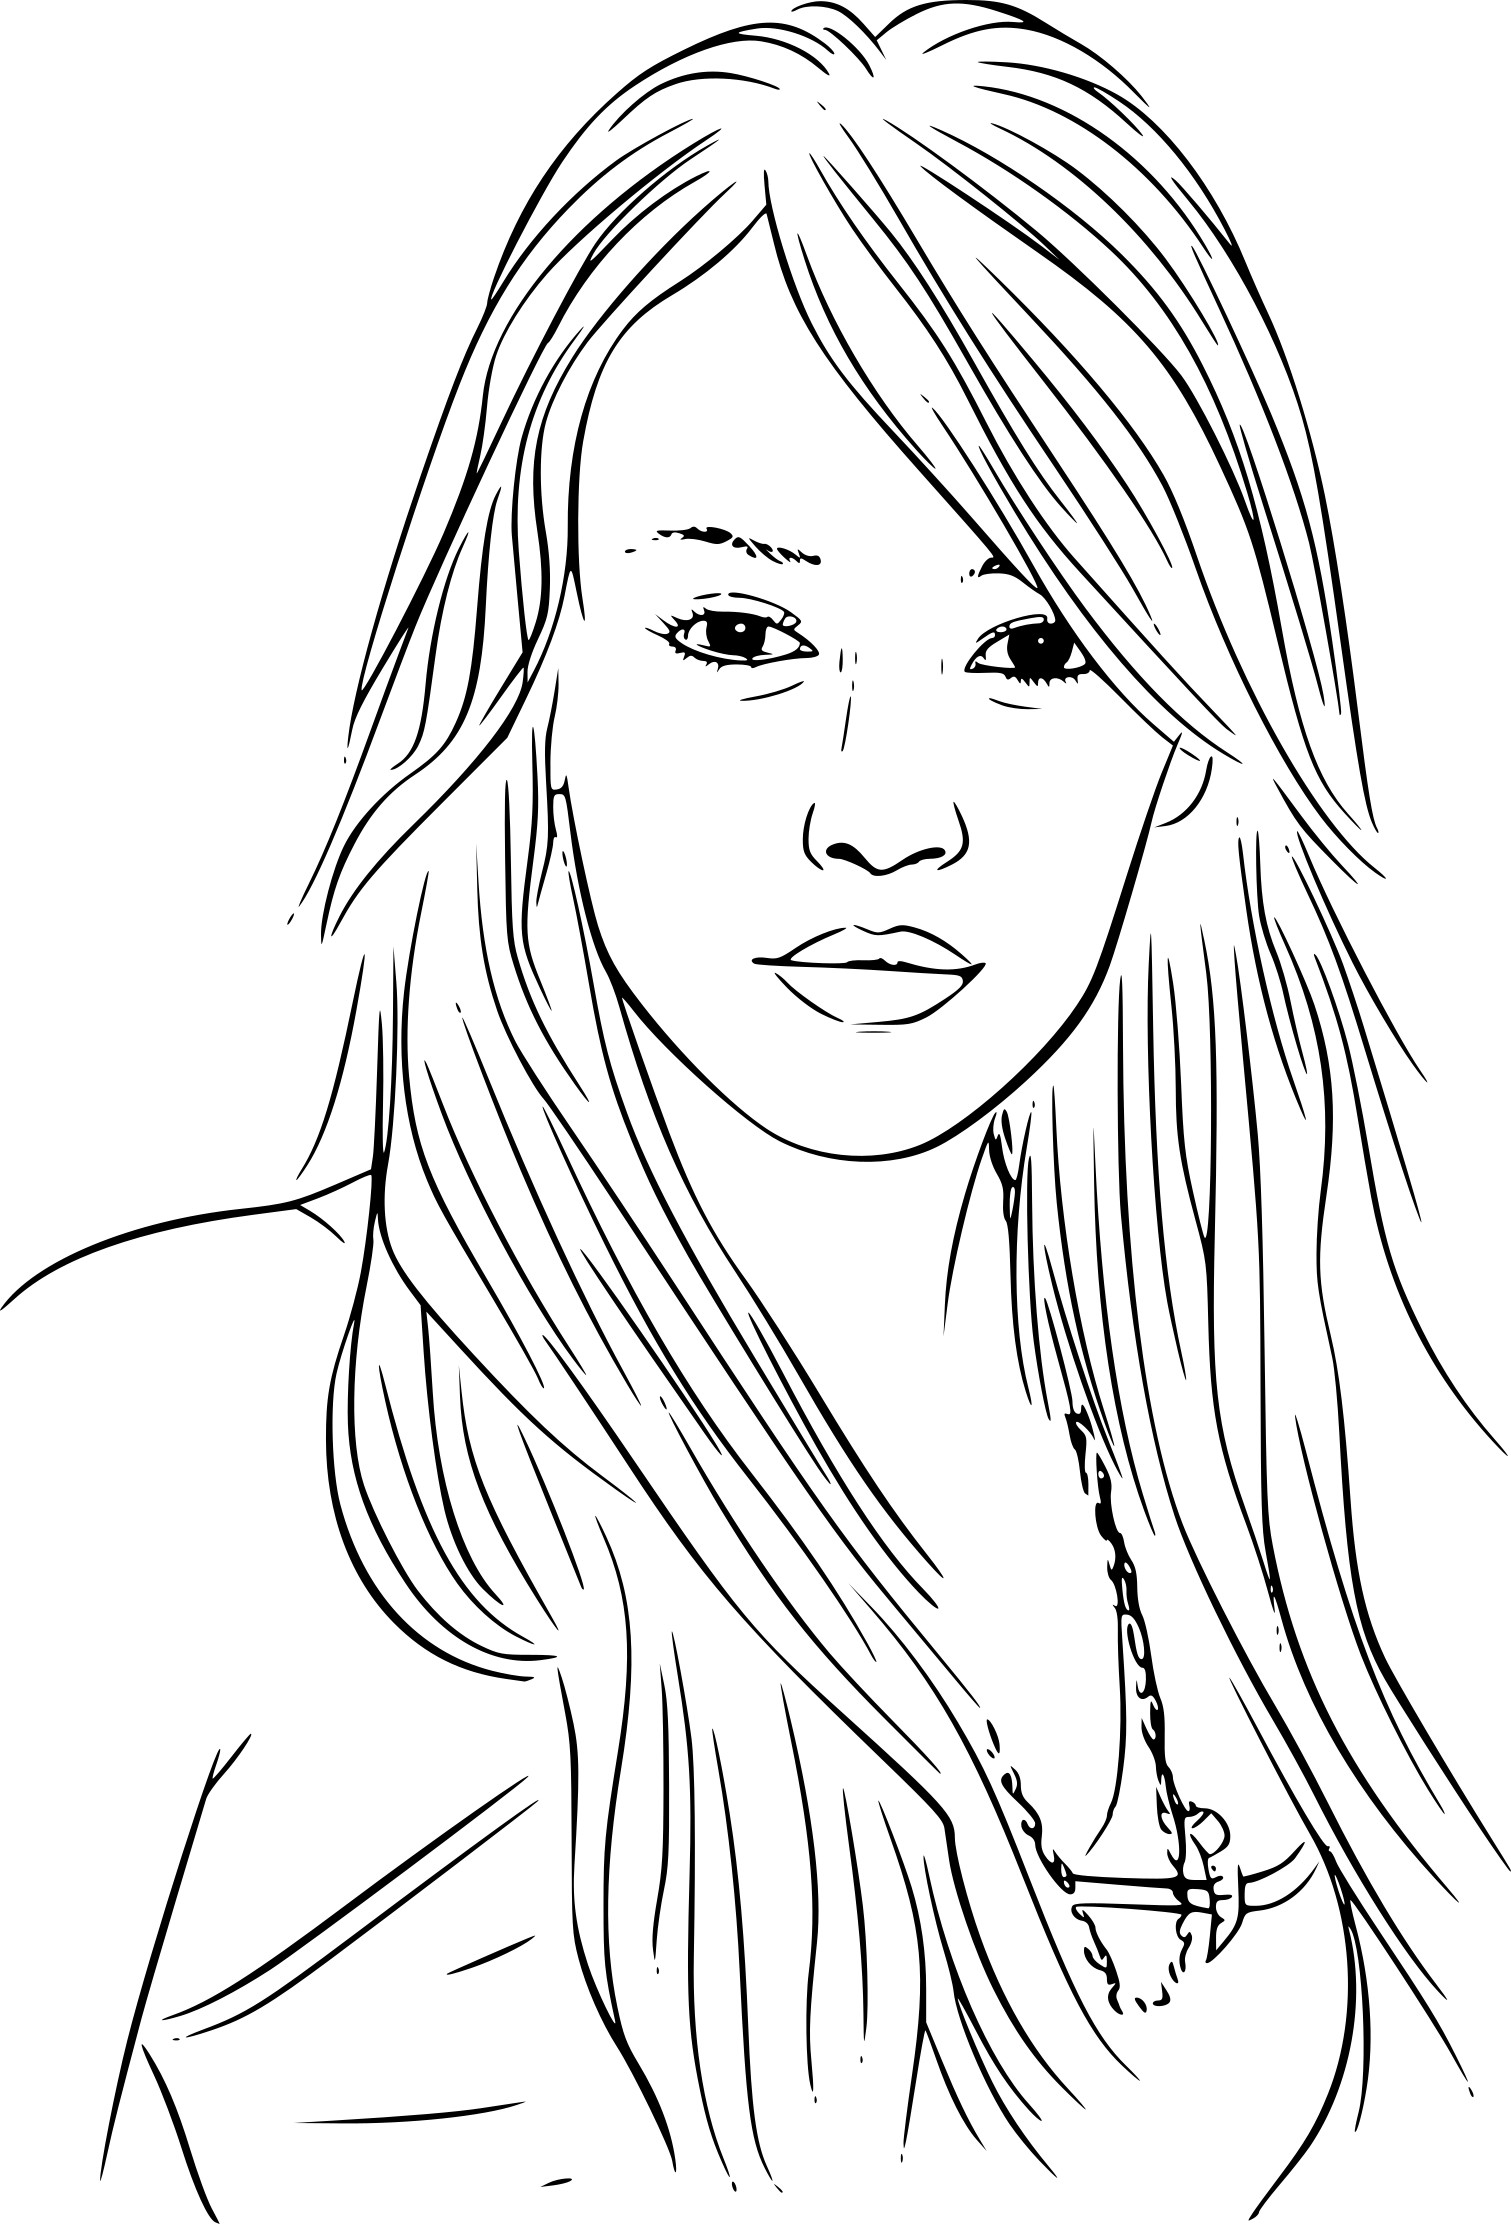 hilary duff coloring pages - photo#8